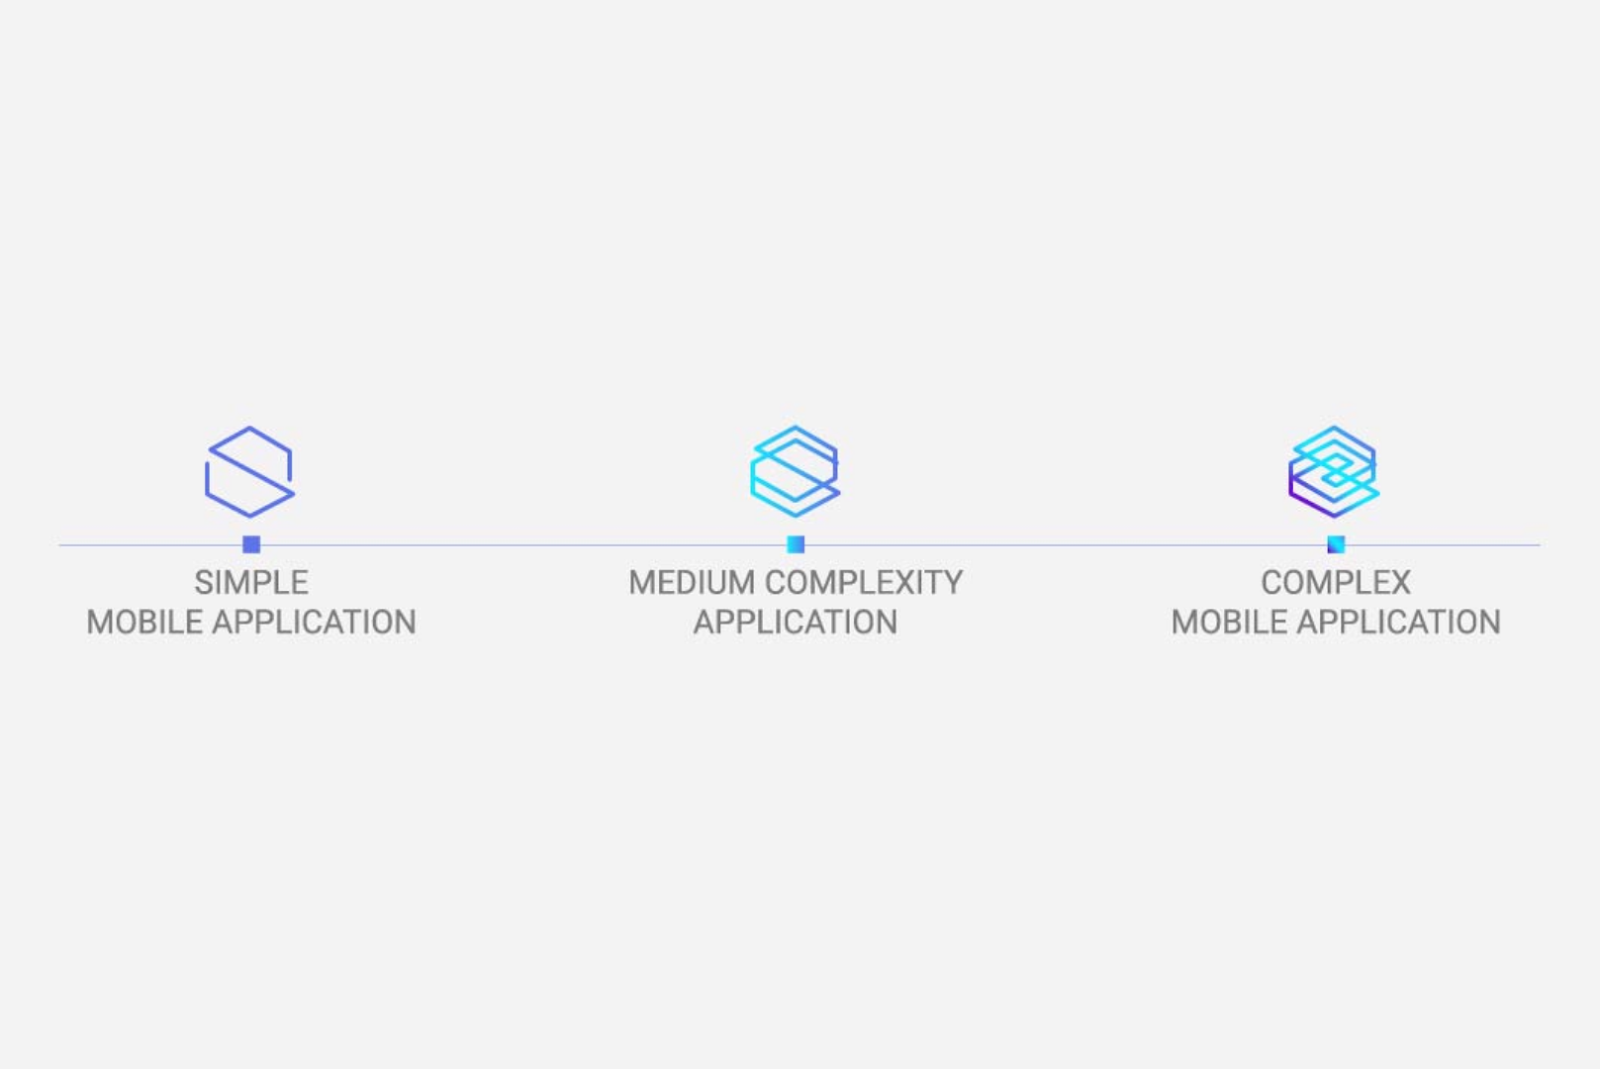 Functionality and Complexity of the Web App